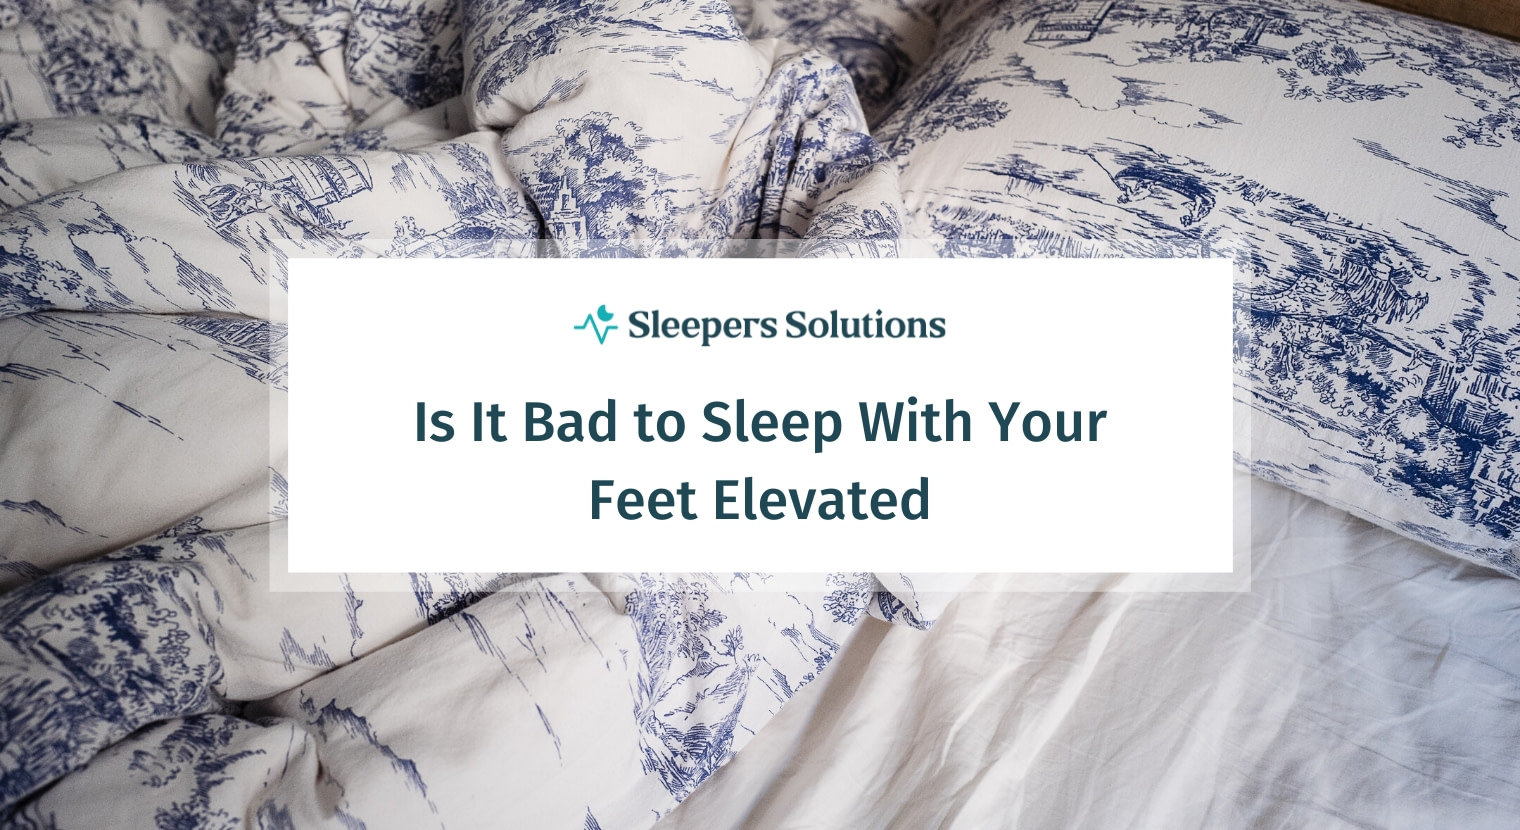 Is It Bad to Sleep with Your Feet Elevated